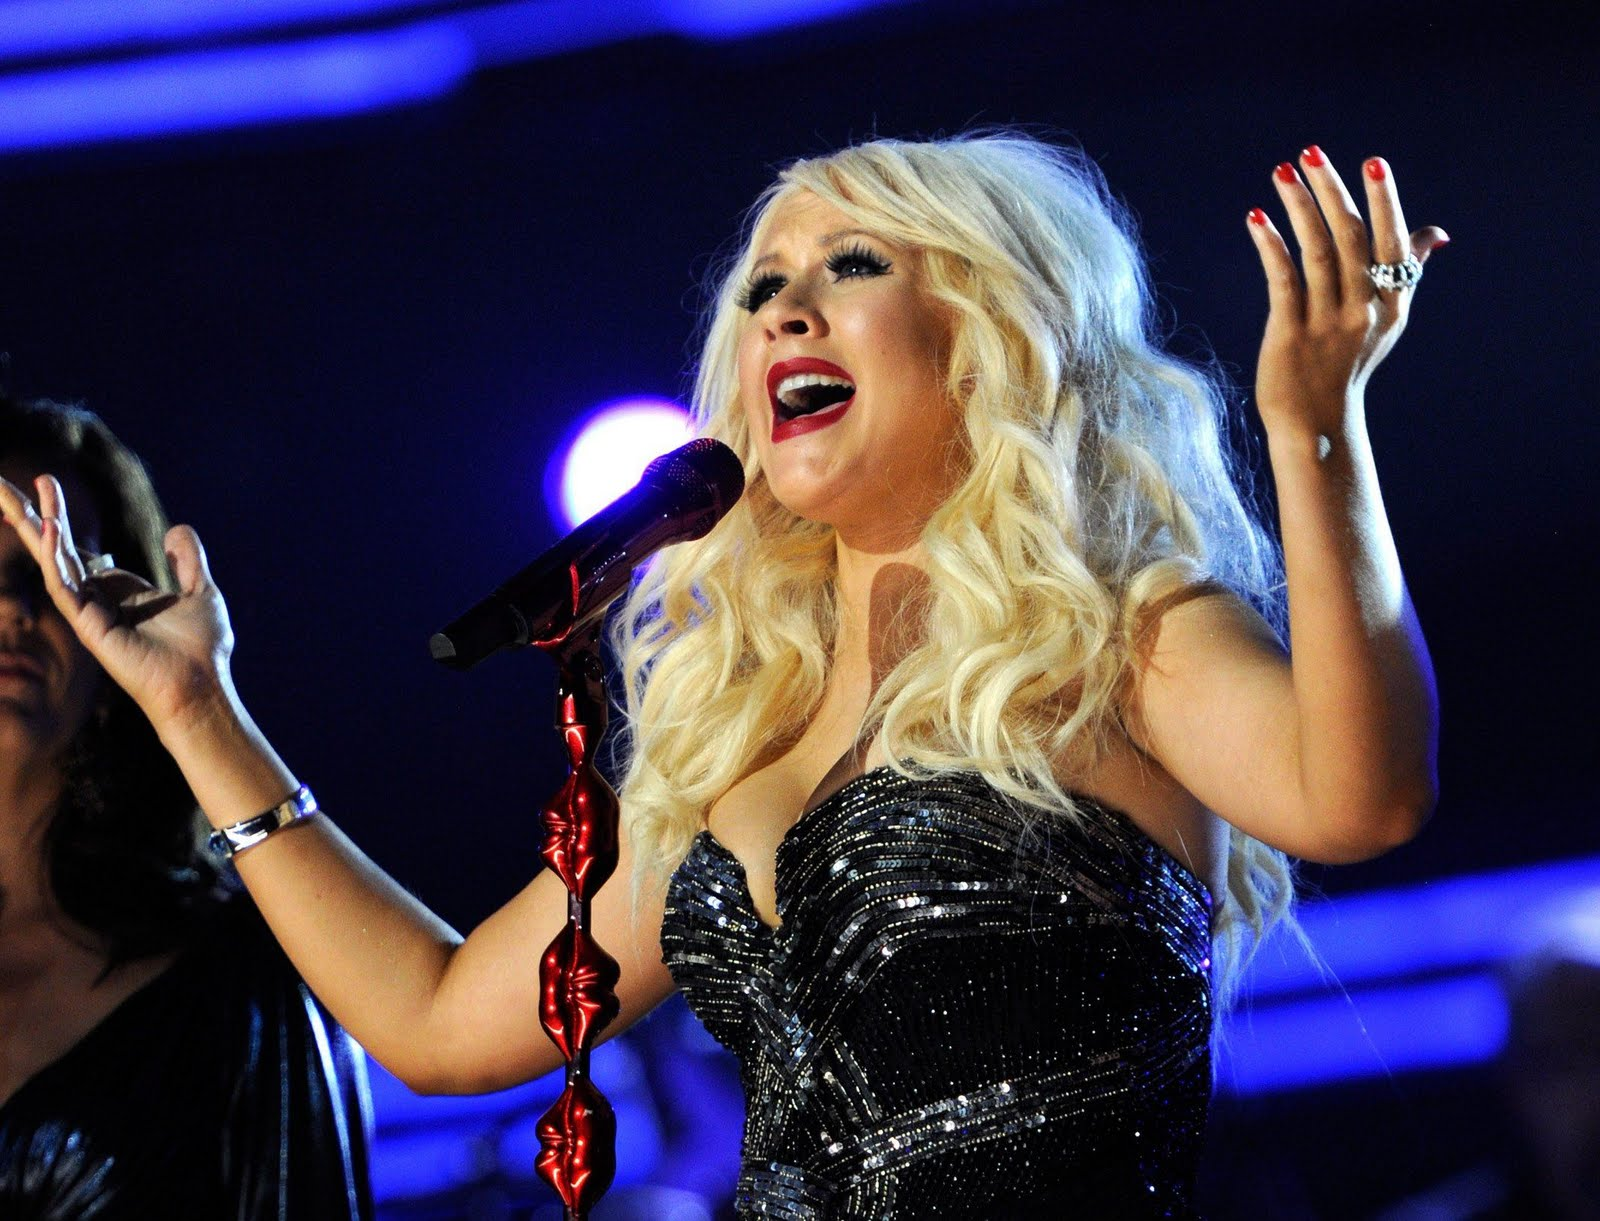 http://4.bp.blogspot.com/-y3GFyou-tvg/To3mLgK-iYI/AAAAAAAAKB4/rs0CaNvT8wM/s1600/55033_Tikipeter_Christina_Aguilera_53rd_Annual_GRAMMY_Awards_043_123_145locrpd.JPG